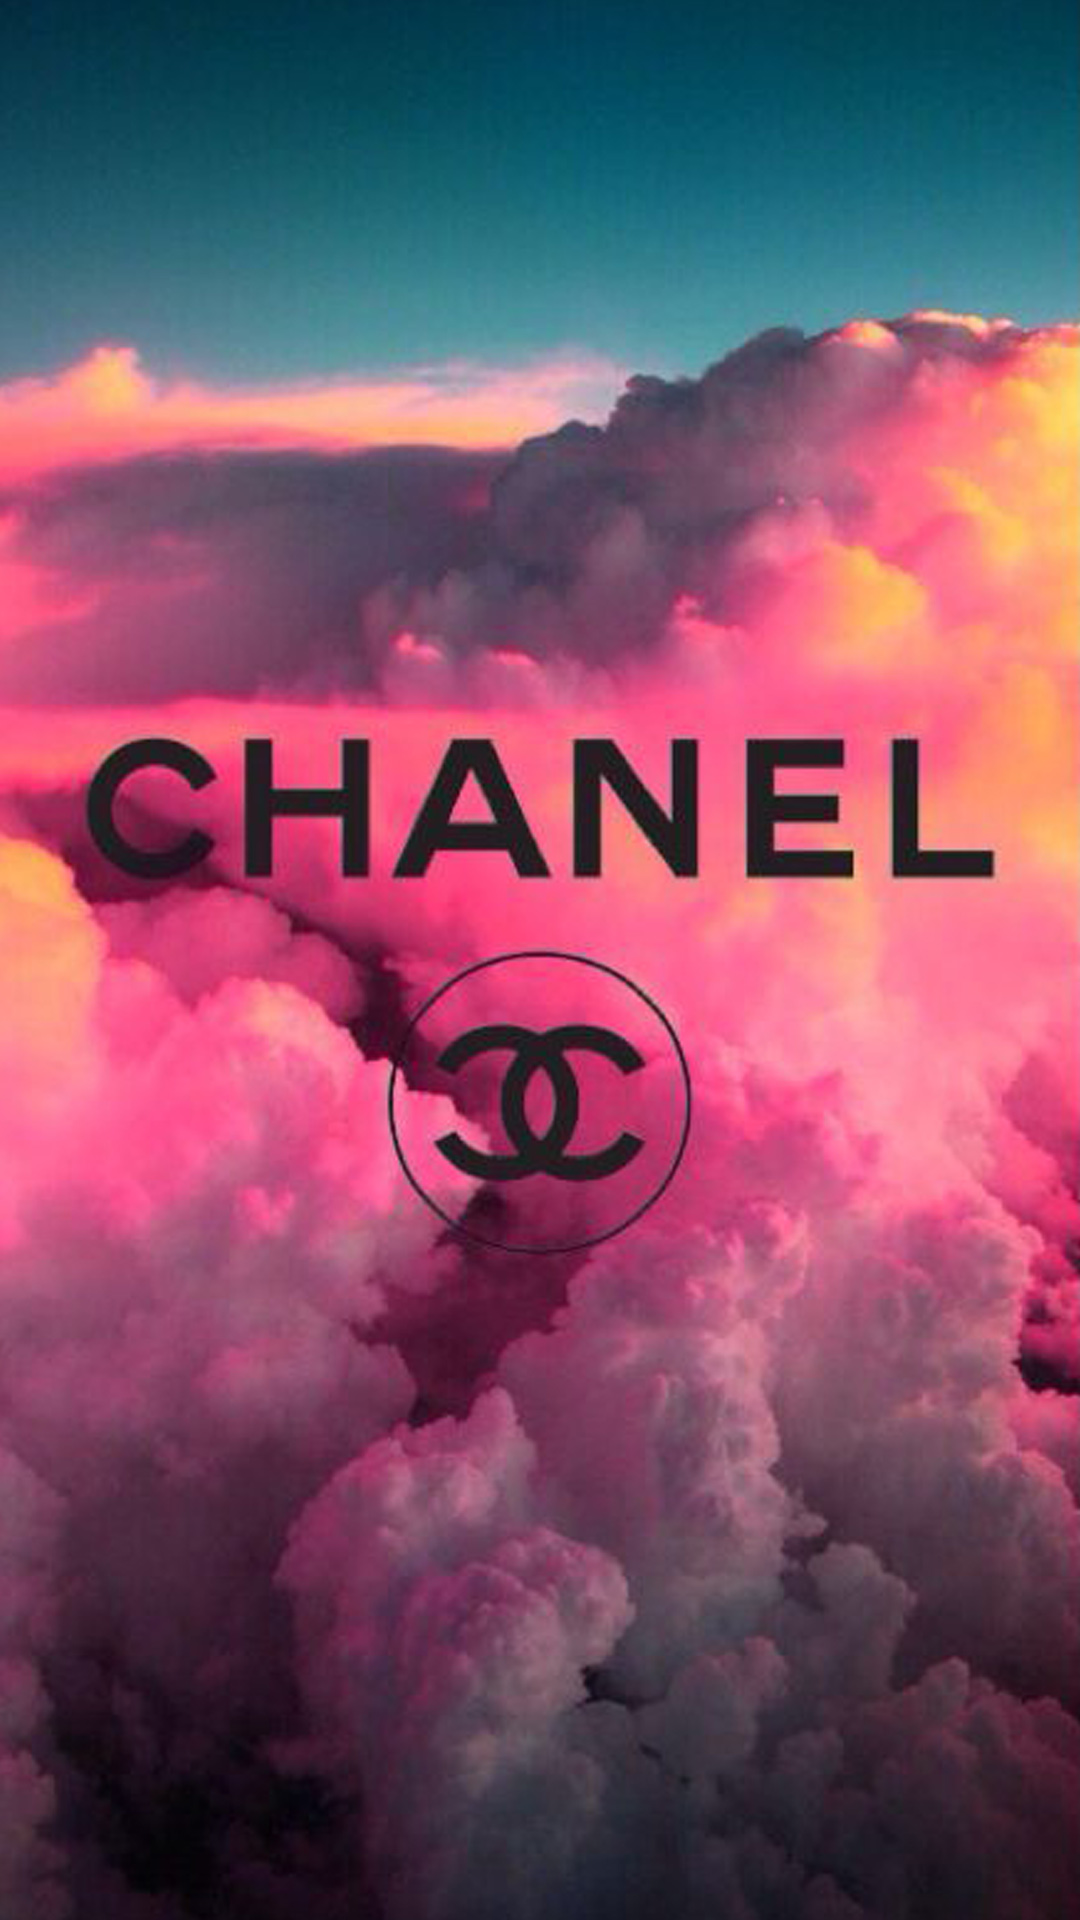 chanel iphone wallpapers hd pixelstalk net. Black Bedroom Furniture Sets. Home Design Ideas